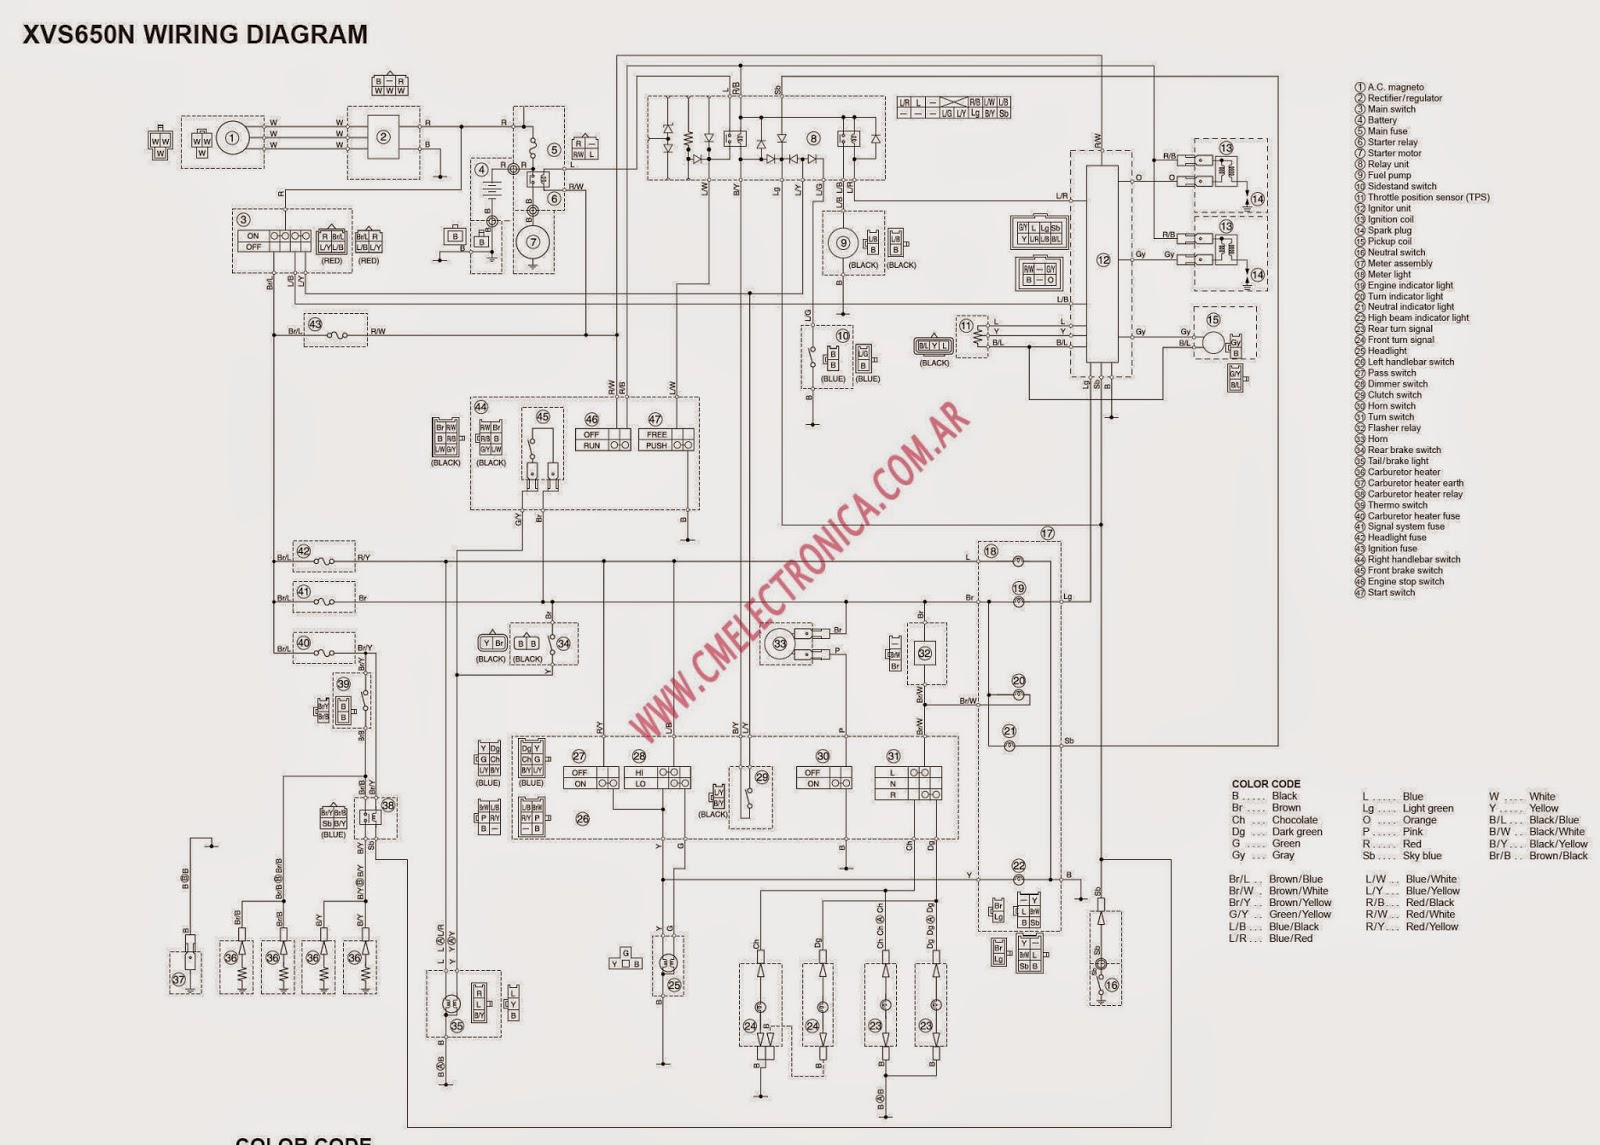 Xvs650 Wiring Diagram Will Be A Thing Chopper Capacitor The Chop Shop 1998 Yamaha Xs650 With Cdi